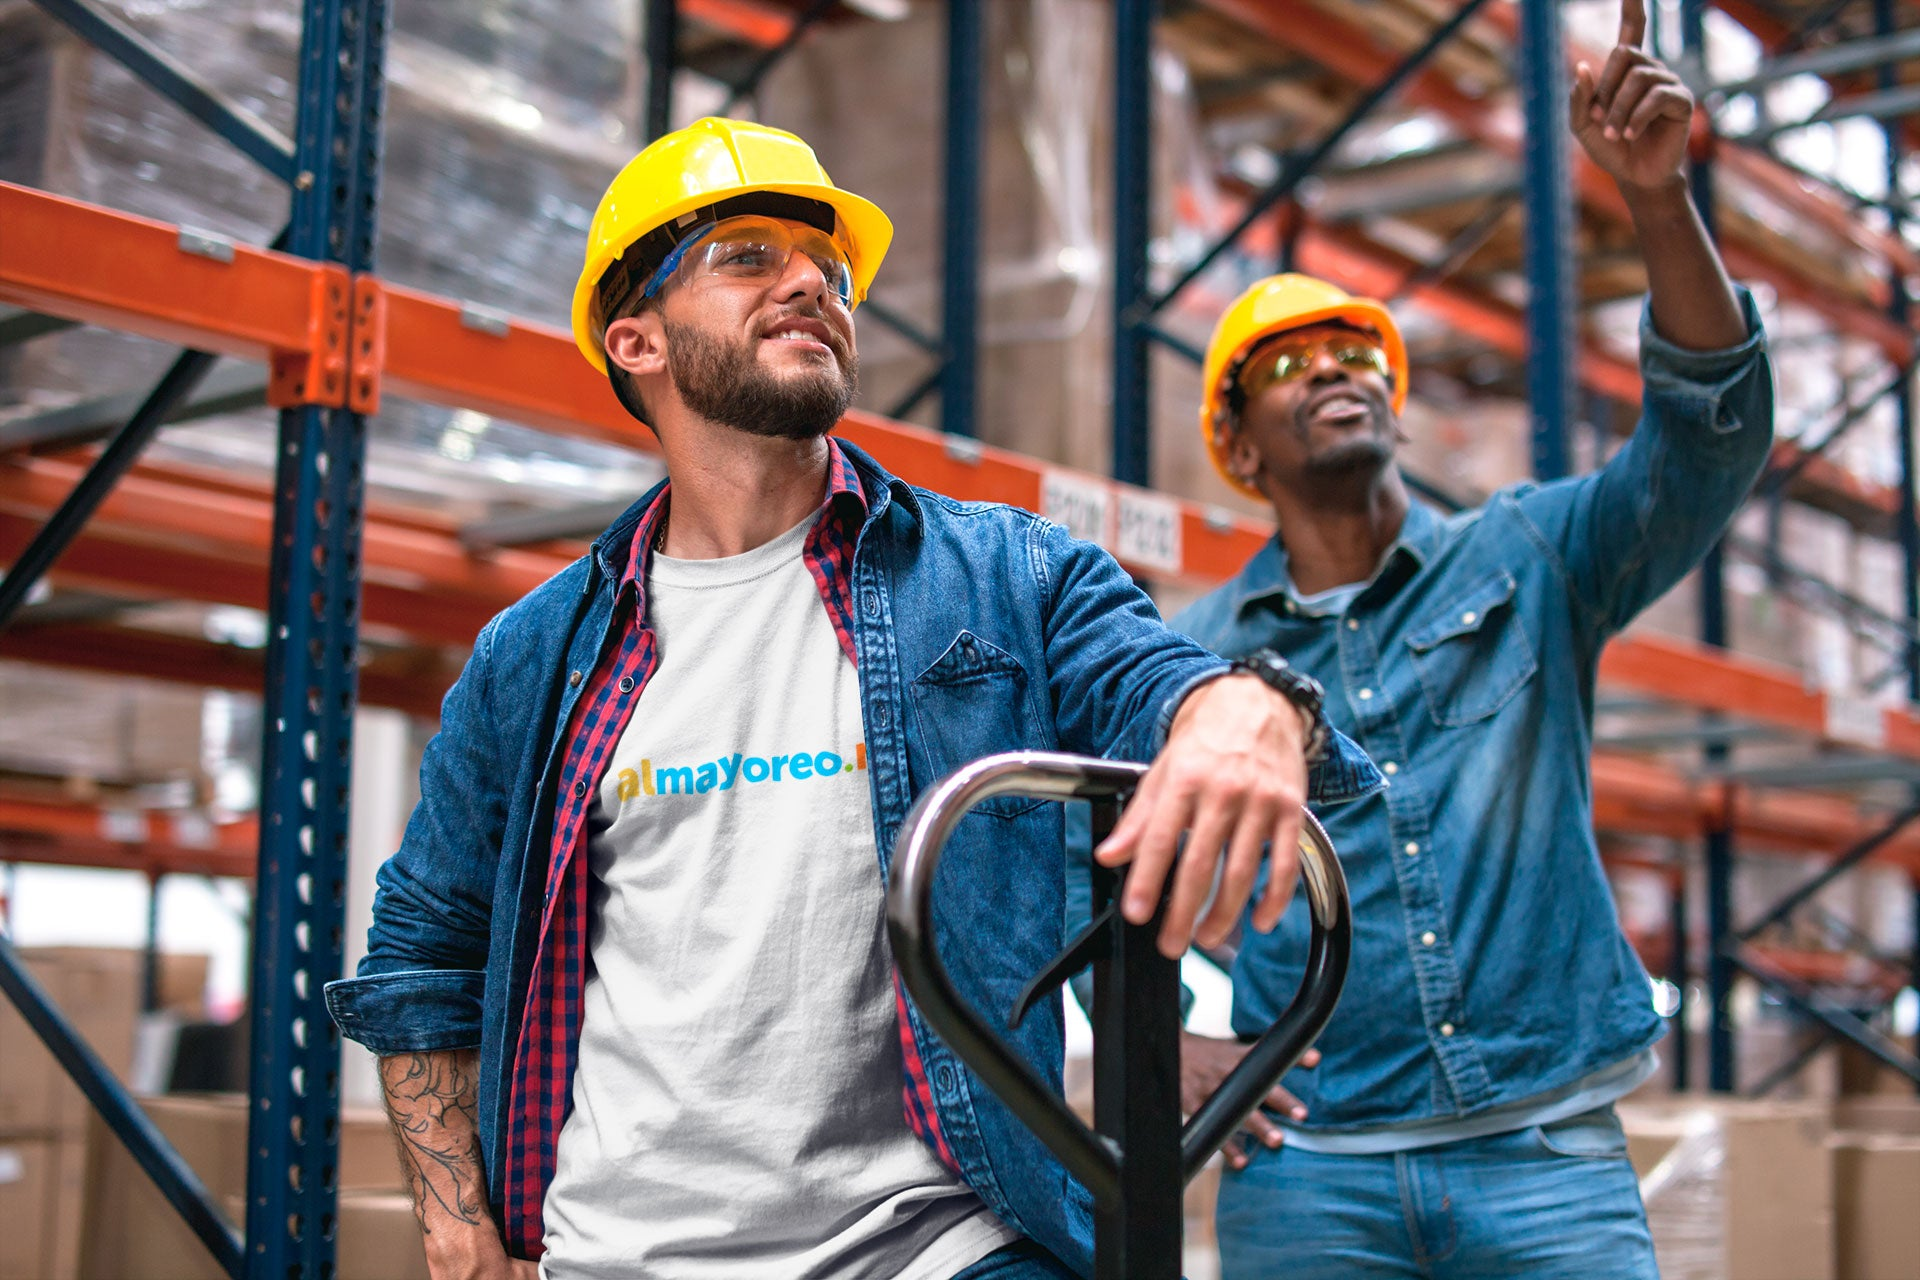 collections/industrial-worker-wearing-a-t-shirt-mockup-with-his-friend-at-the-warehouse-a20379.jpg